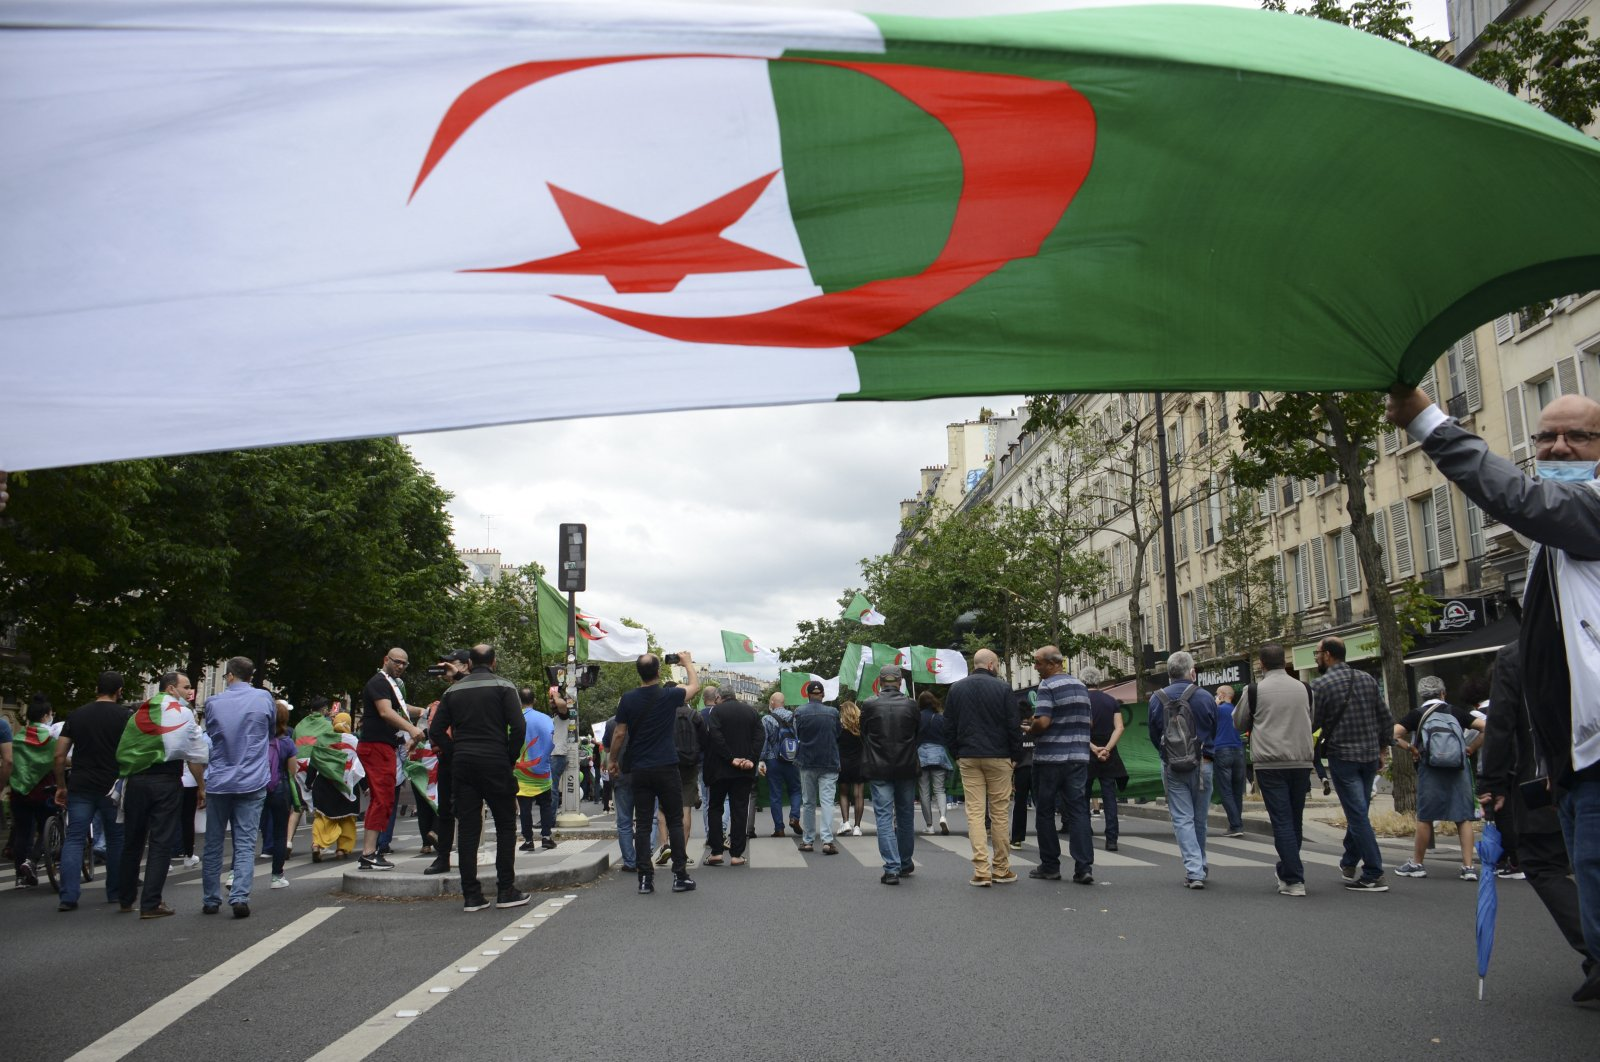 A parade by the Algerian population in Paris is held from Place de la Republique in the direction of the Bastille to commemorate Algeria's independence, in Paris, France, June 5, 2020. (Reuters Photo)